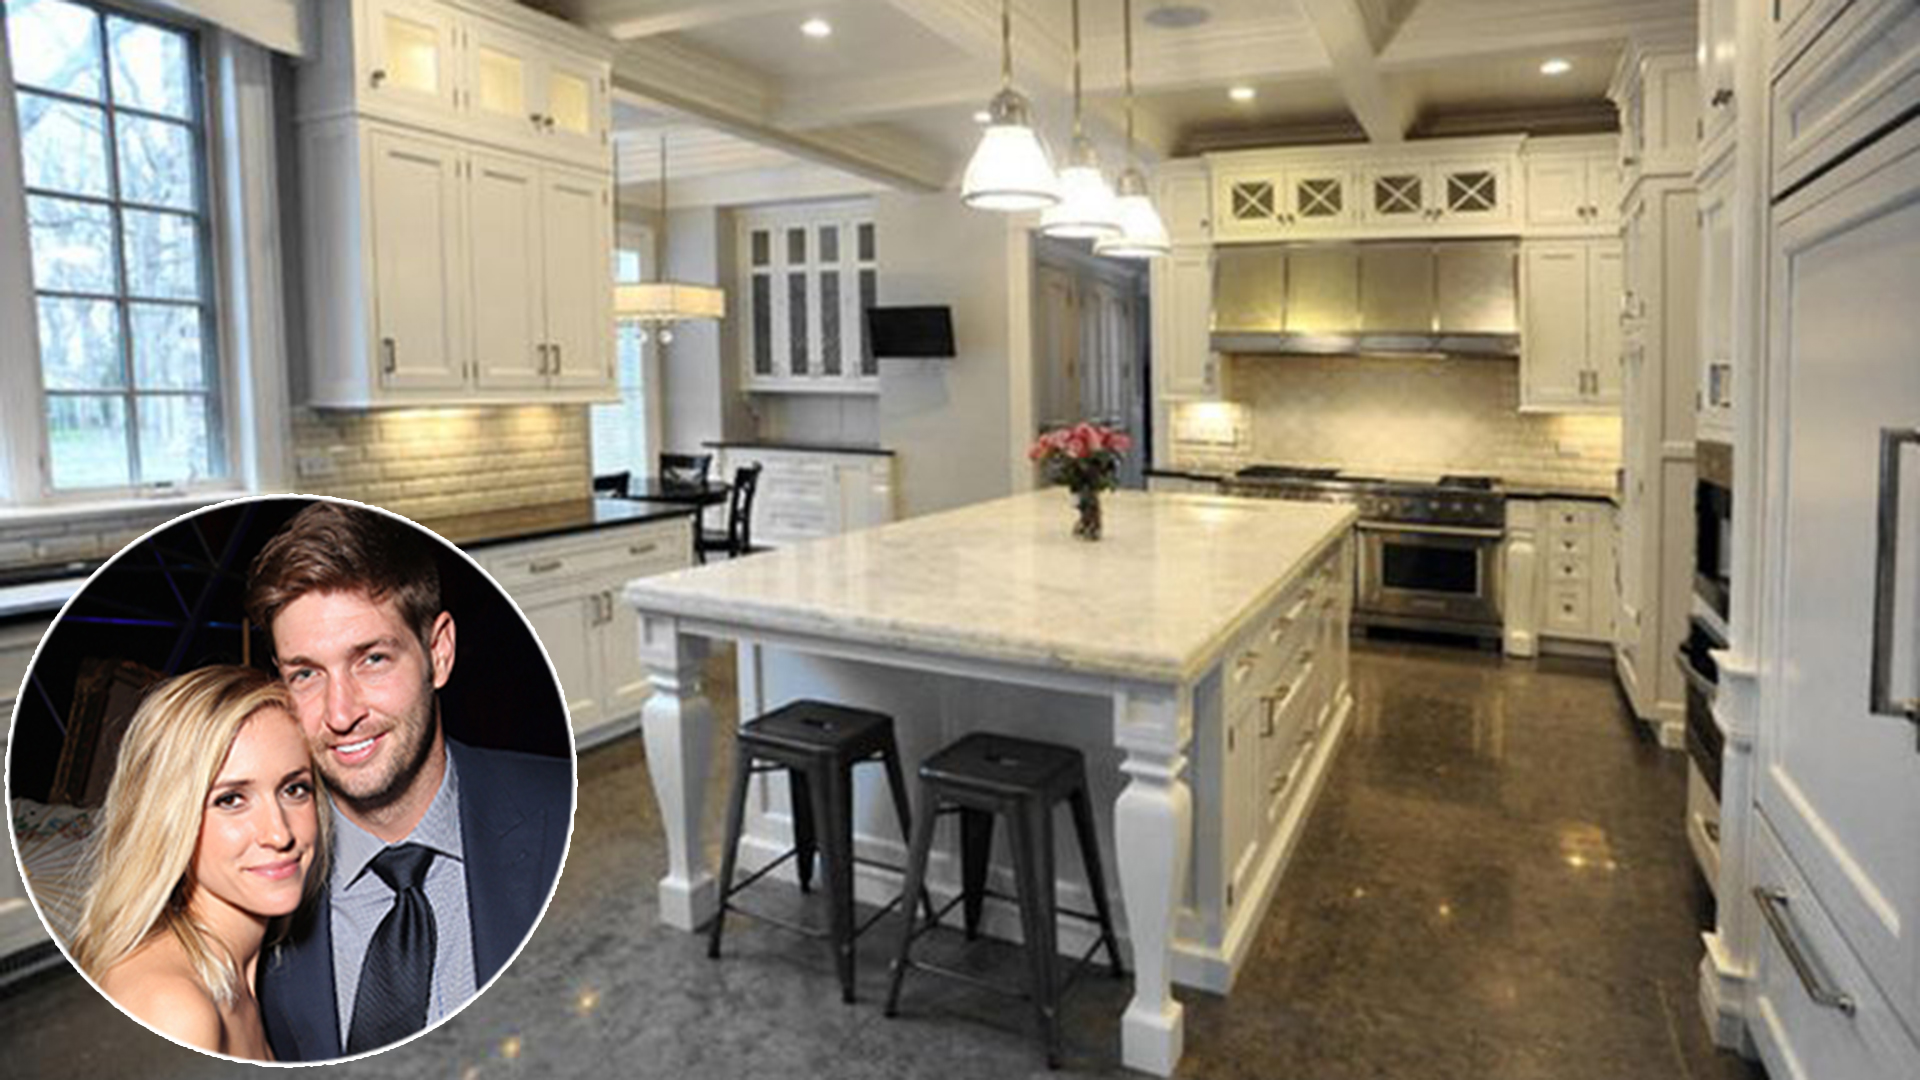 New Kisten Regal Room Kristin Cavallari And Jay Cutler 39s Chicago House Is For